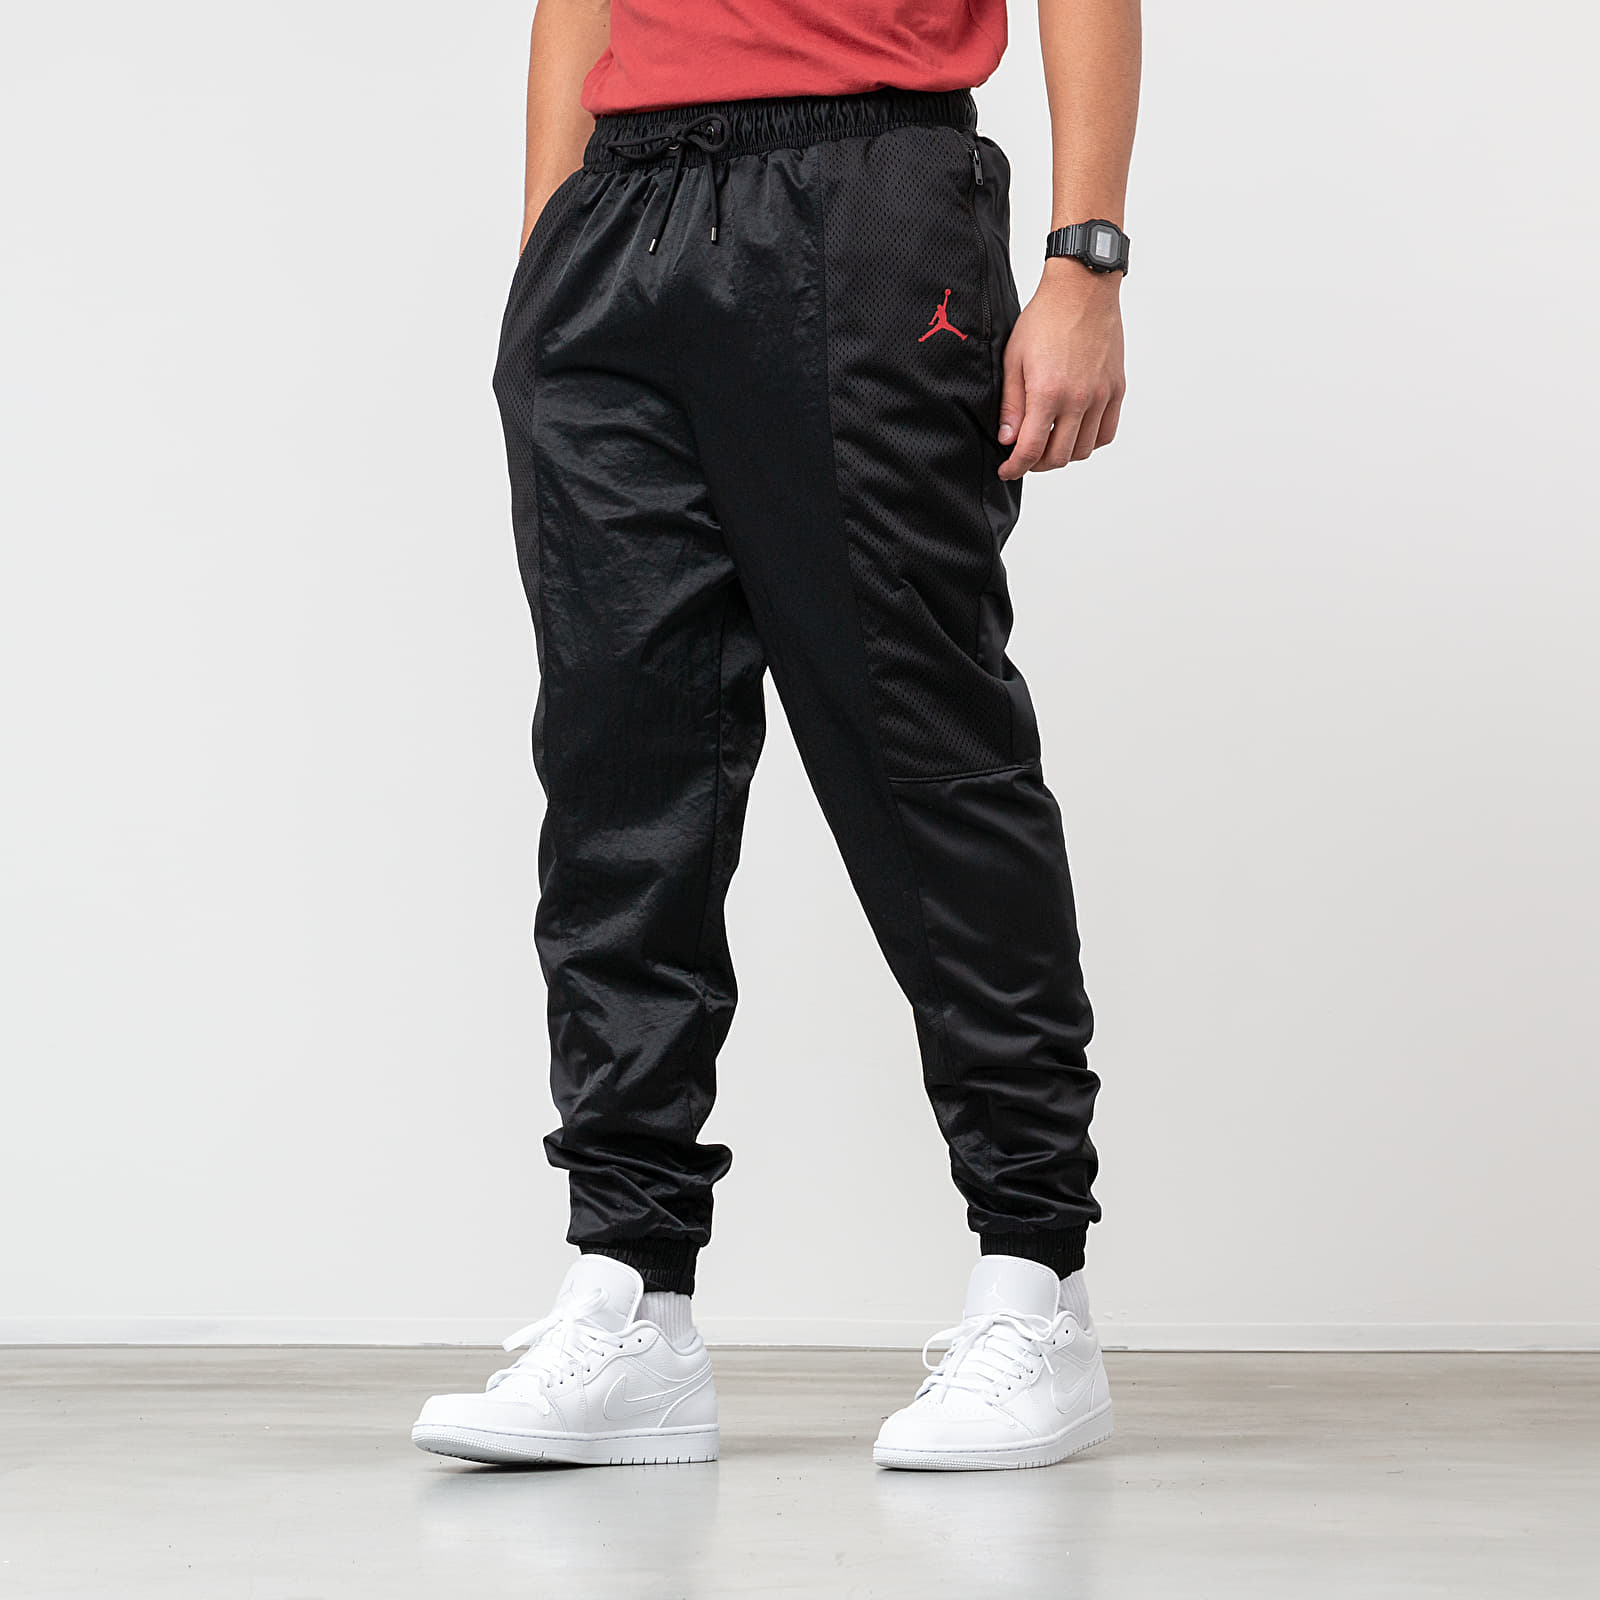 Jordan Wings Suit Pants